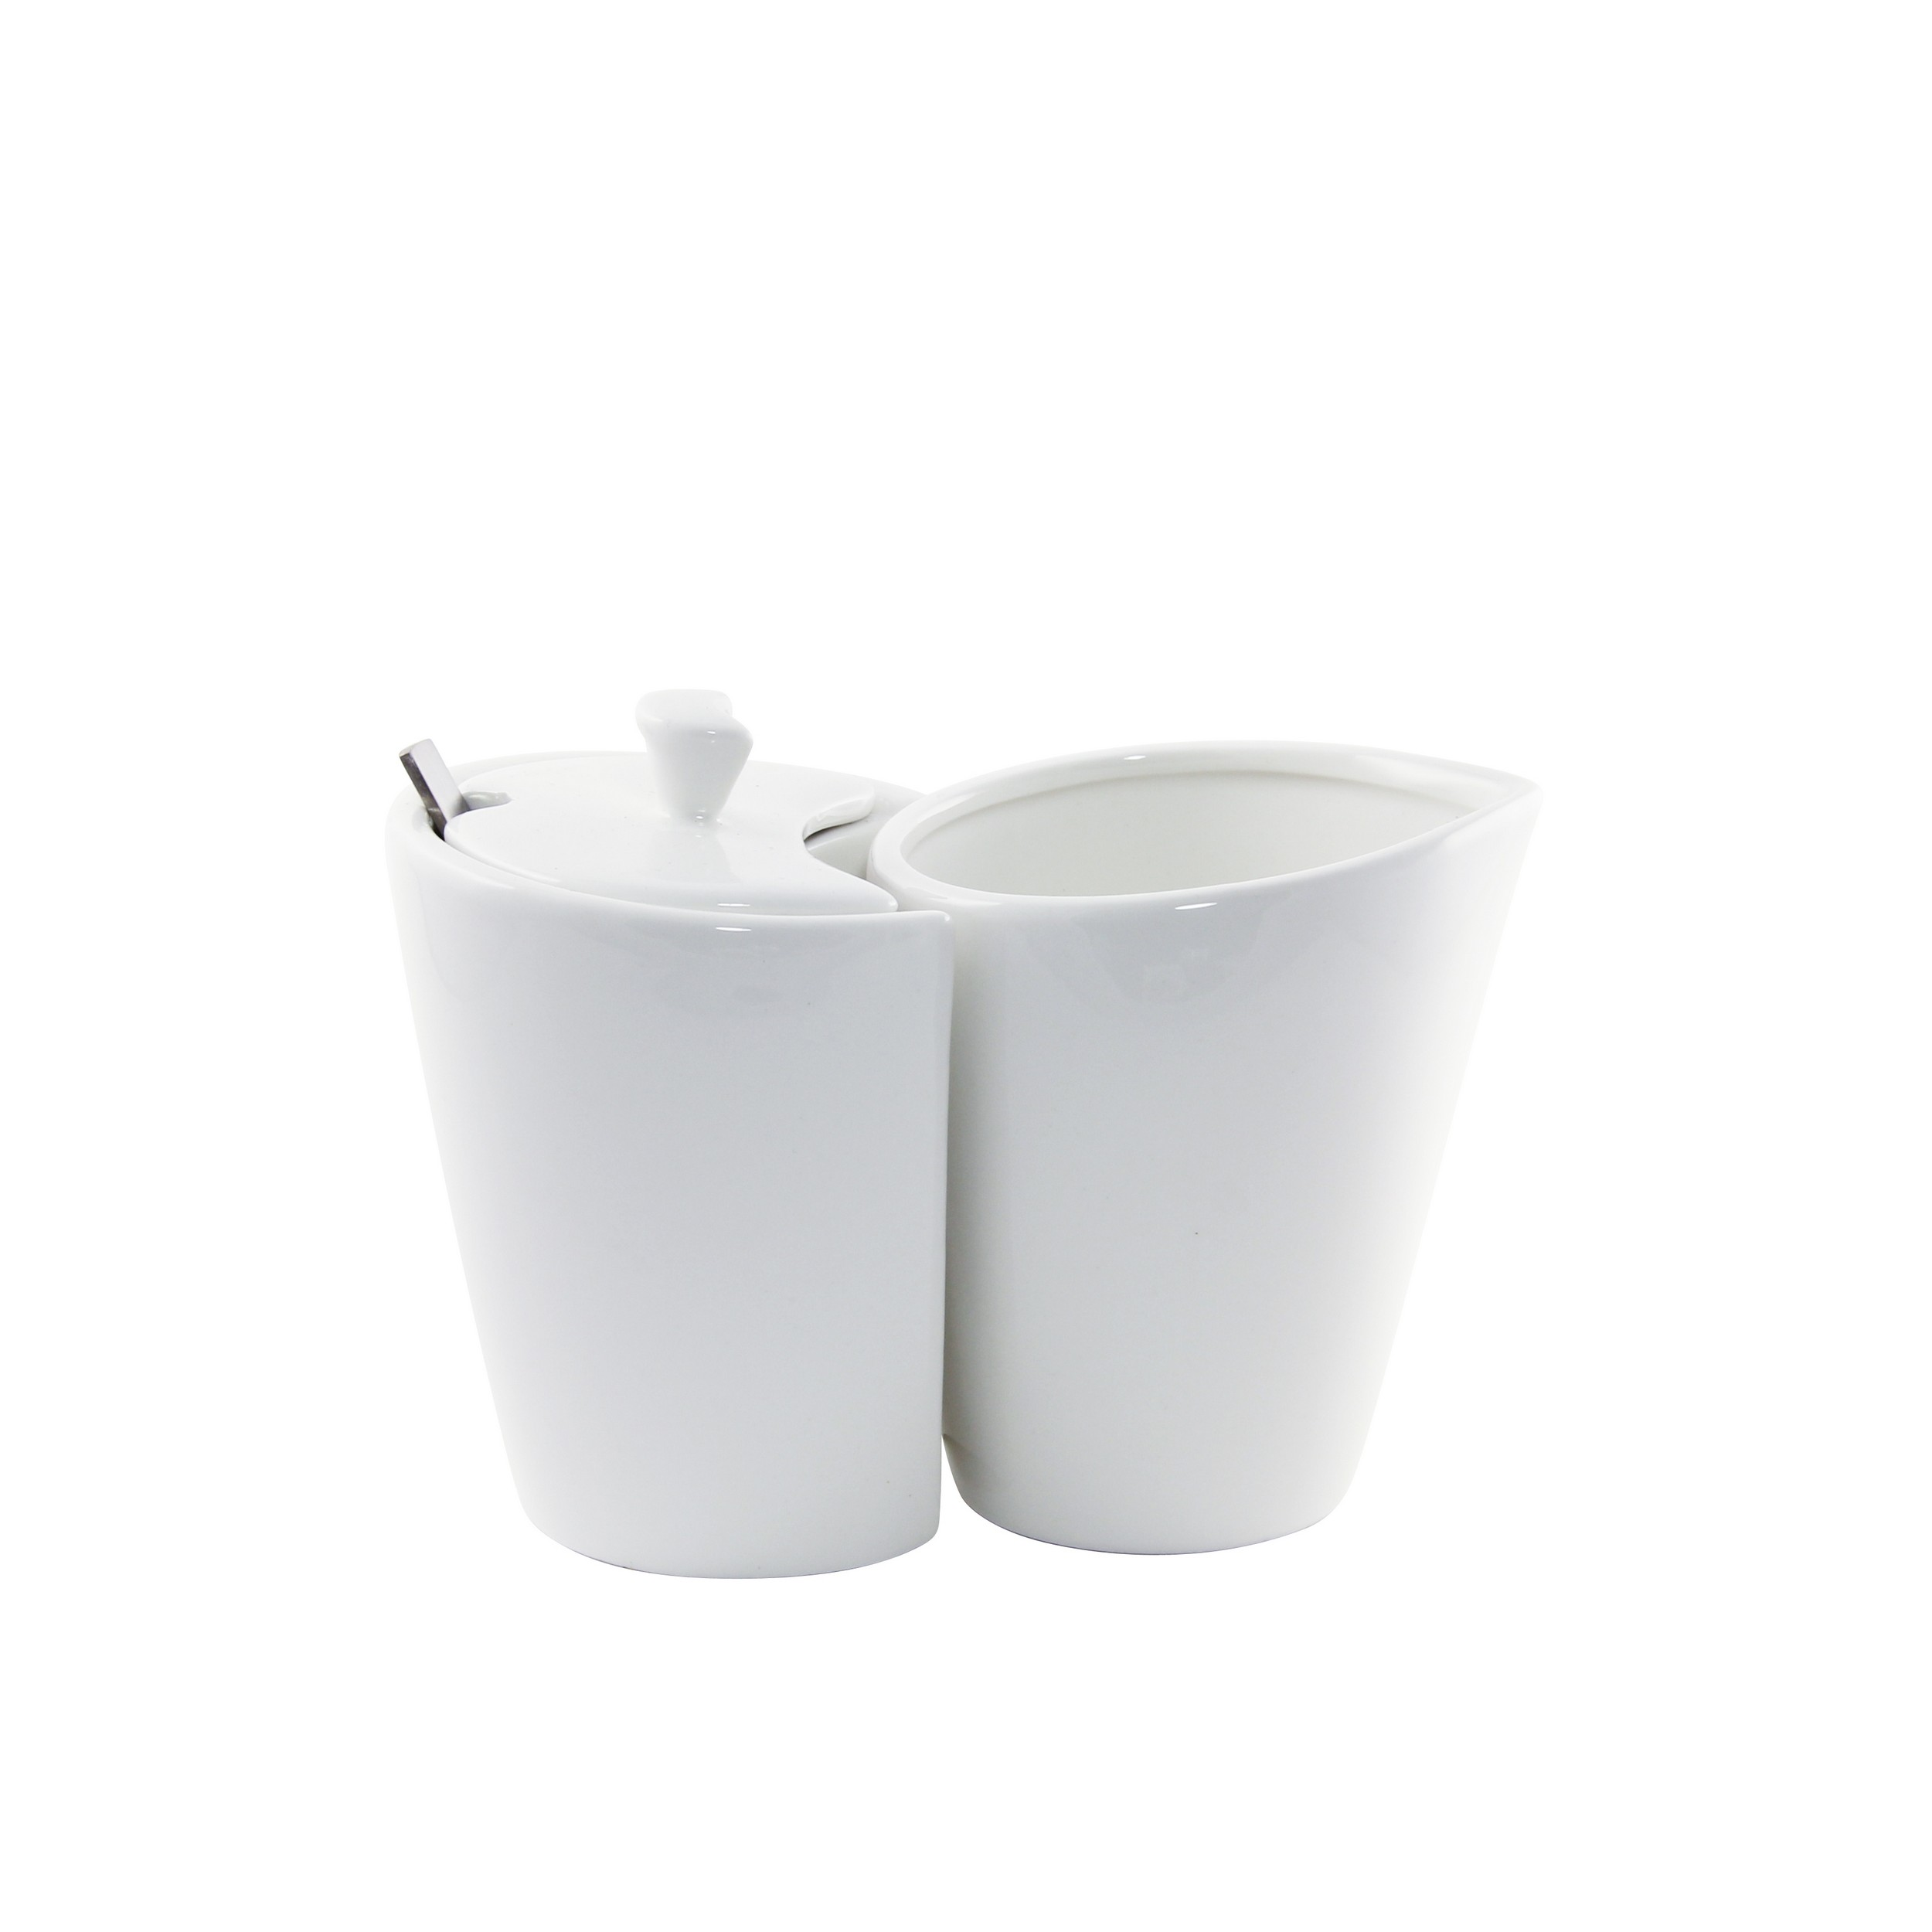 3 1 4L x 2 1 4W x 3 3 4H Whittier Sugar Bowl with Lid Case Of 48 by